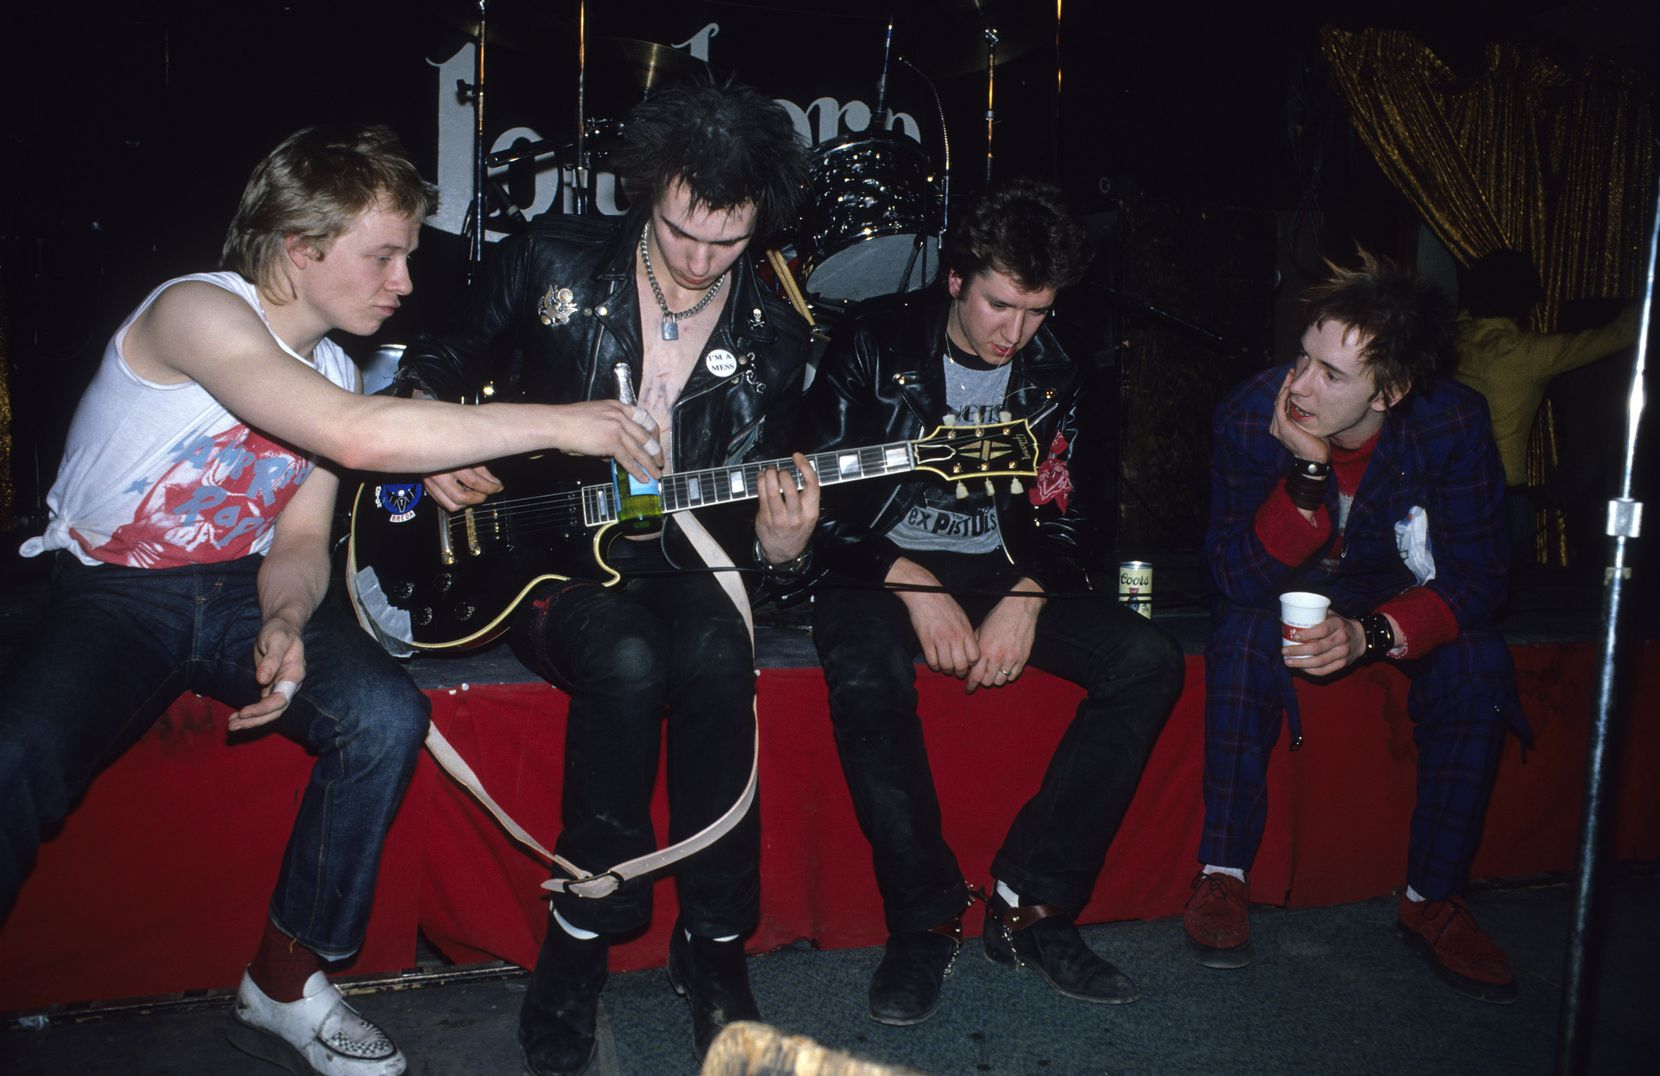 The Sex Pistols, from left, Paul Cook, Sid Vicious, Steve Jones & Johnny Rotten (John Lydon) onstage at the Longhorn Ballroom in Dallas on their final tour.